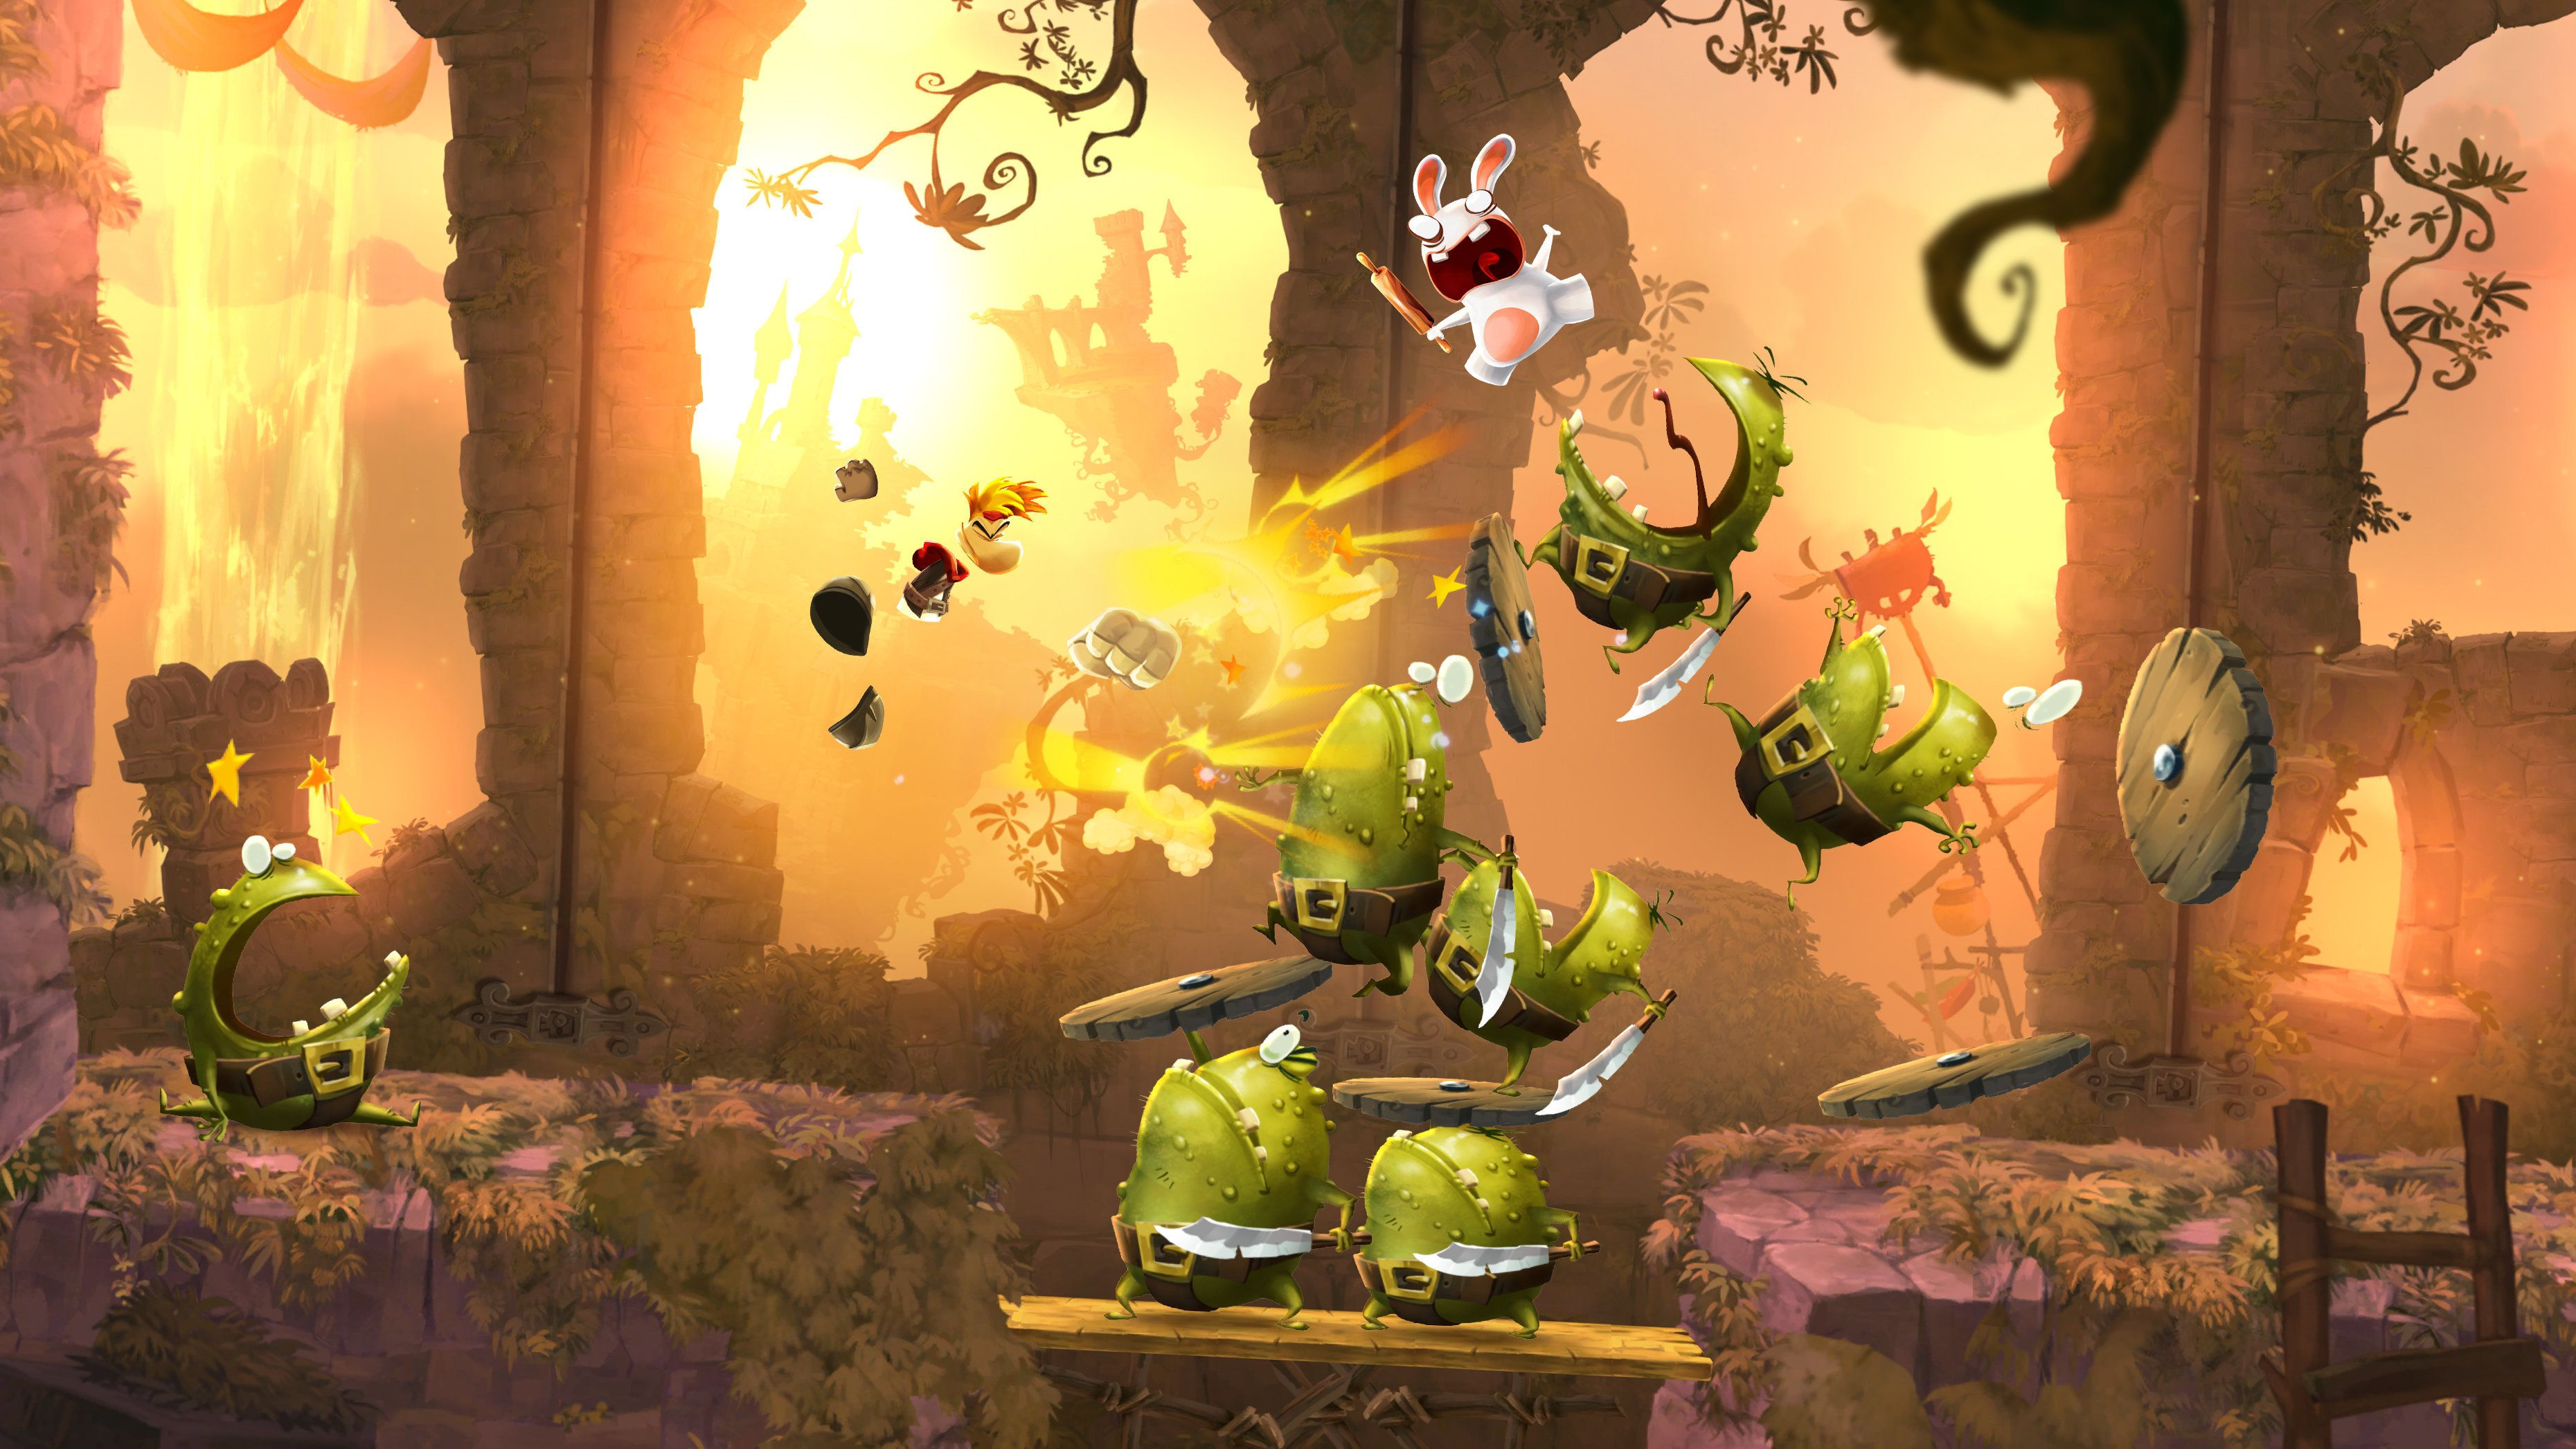 'Rayman Adventures' Is A Game That Will Always Leave You